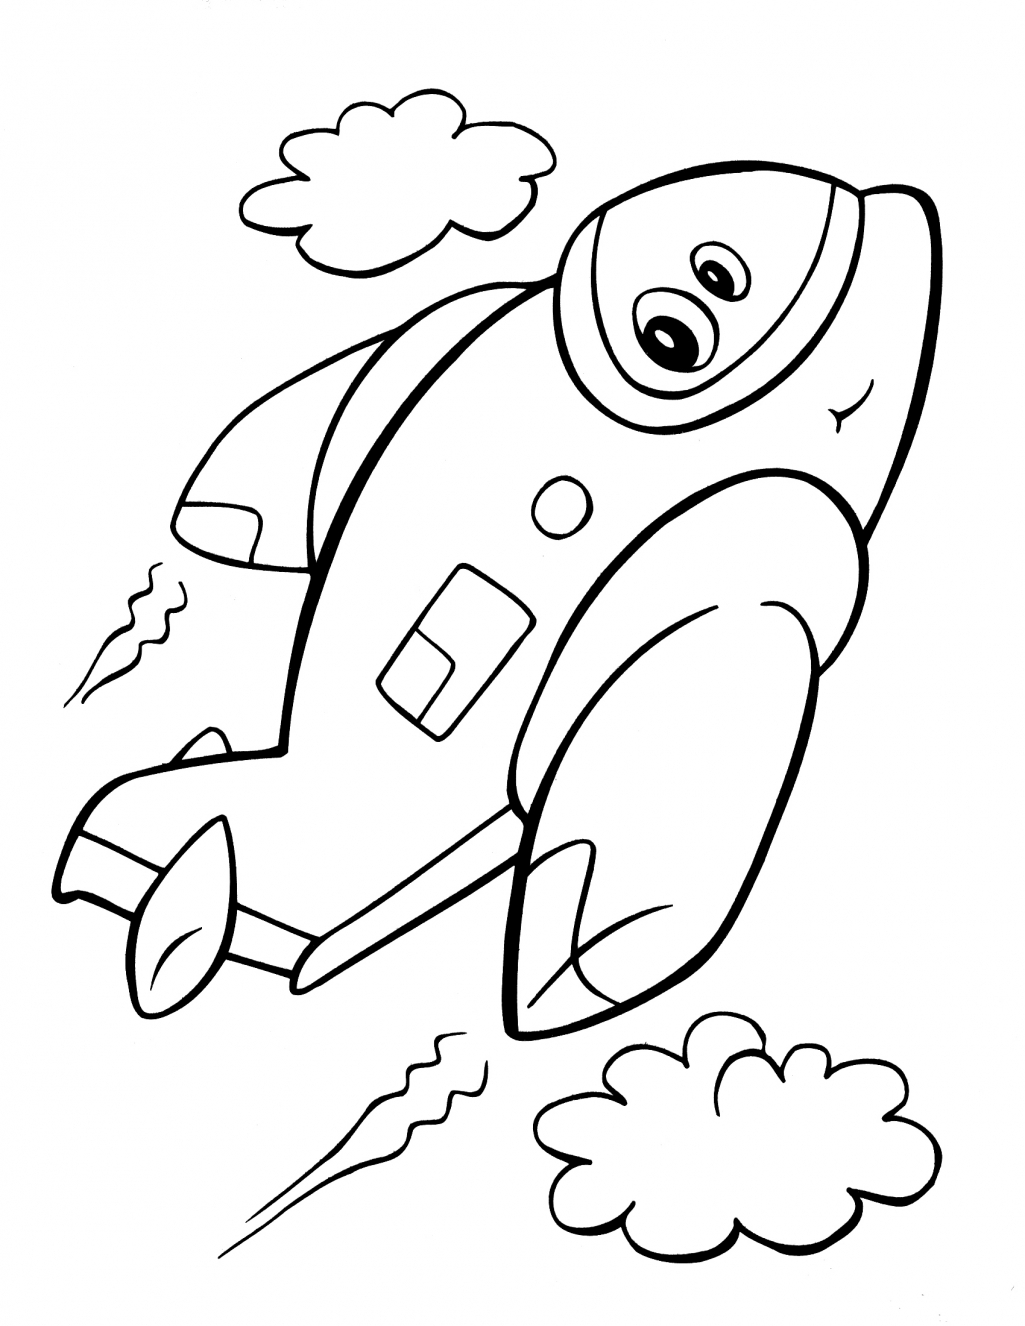 Crayola Free Coloring Pages at GetDrawings.com | Free for personal ...